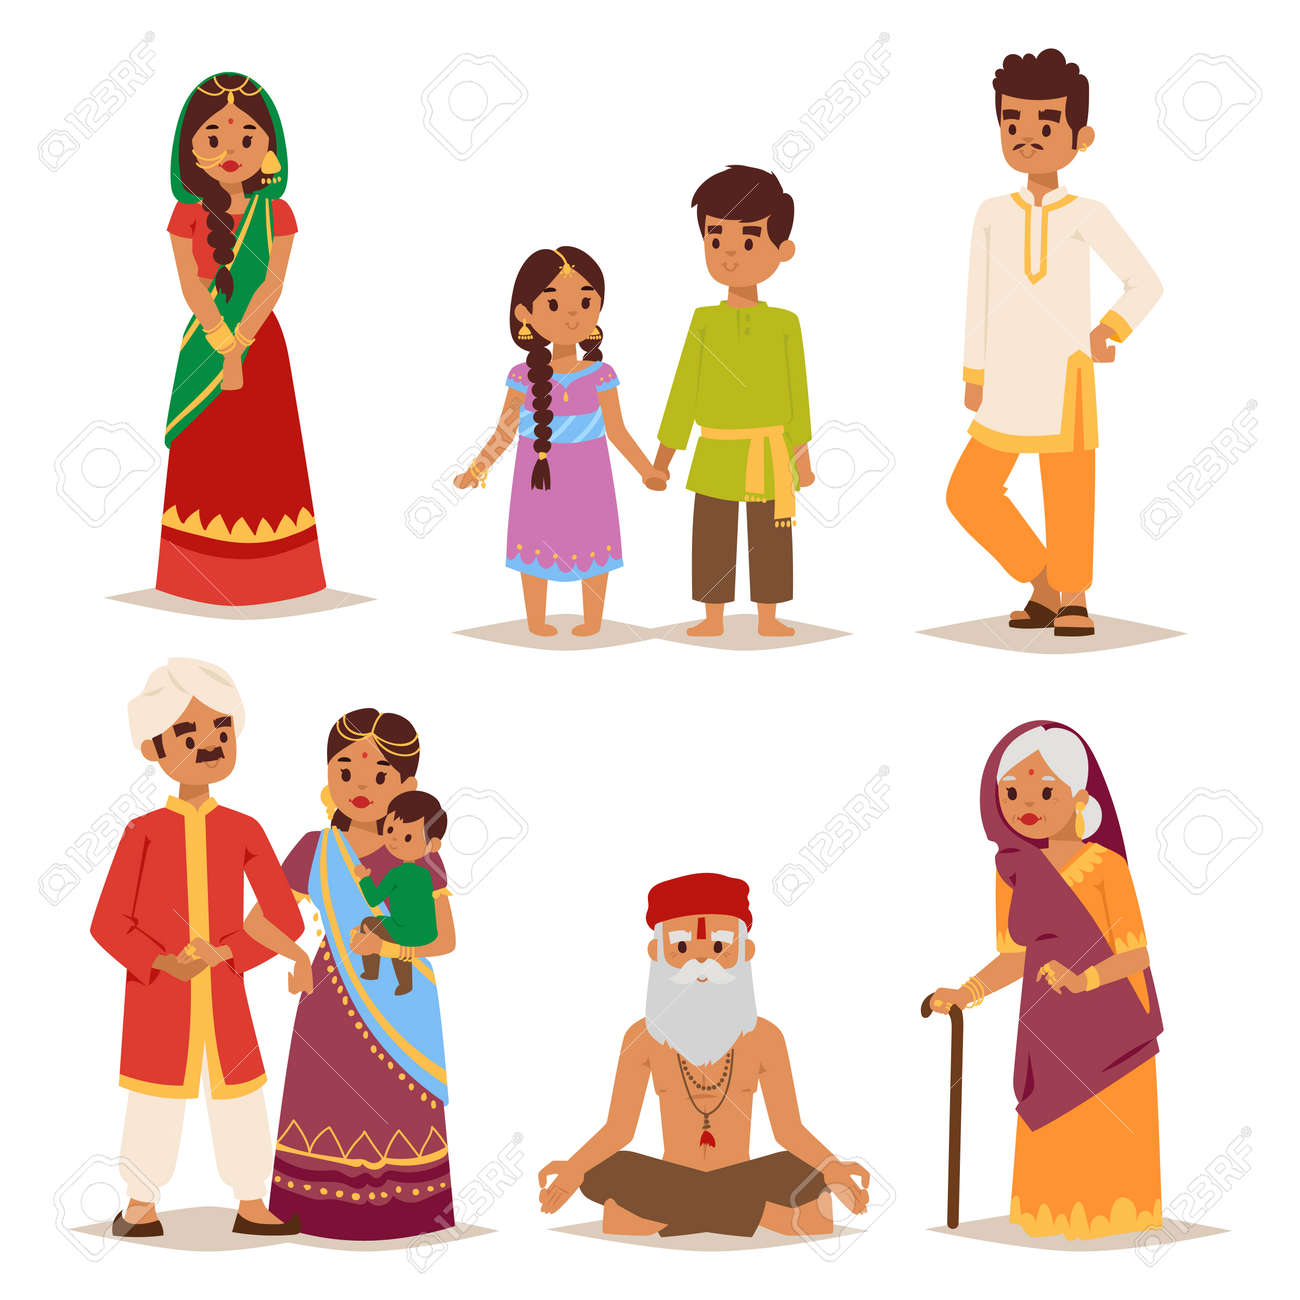 03a17aea46 Vector - Vector illustration of Indian couple of different culture standing  together. Indian people female happy person. Ethnicity cheerful casual  Indian ...